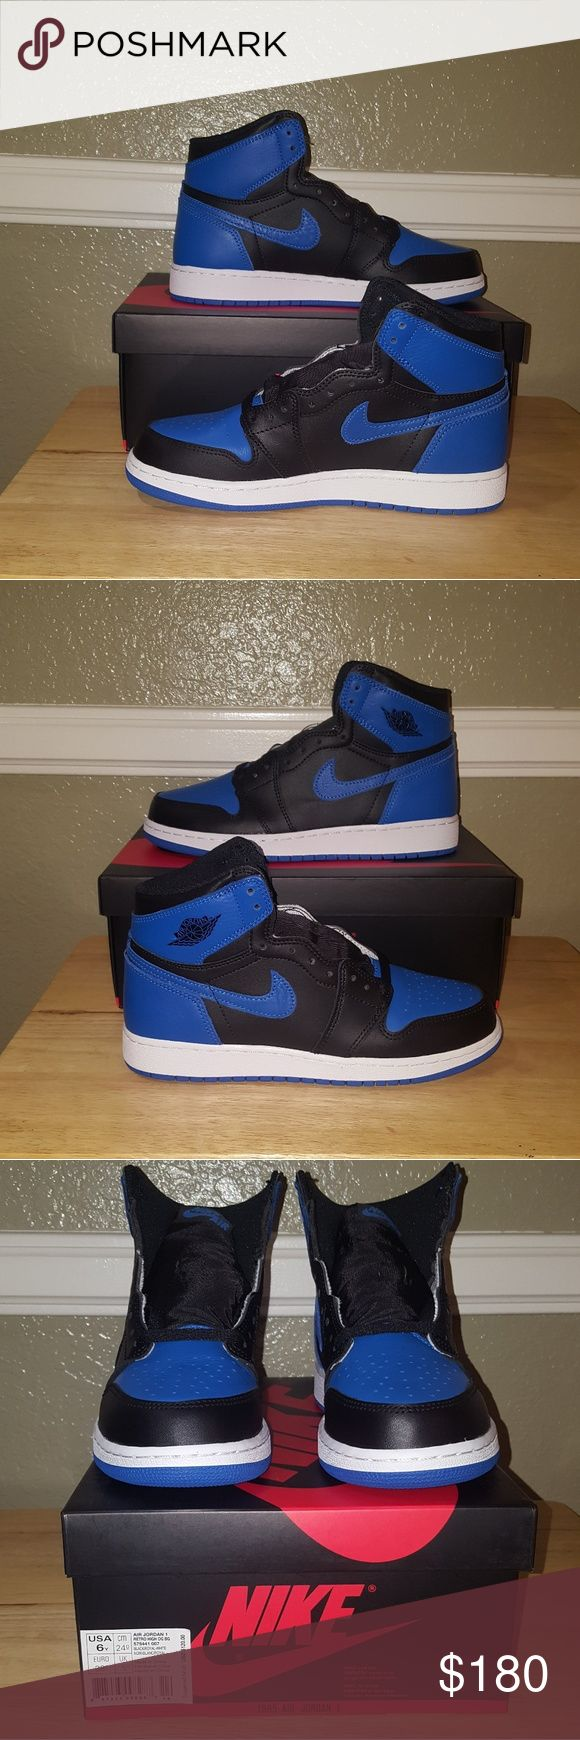 """Nike Air Jordan Retro 1 Royal Selling brand new Nike Air Jordan 1 """"Royal"""" they're a black and blue version of Michael Jordan's first signature shoe. It originally released in 1985, followed by 2001, and 2013. Shoes features a mix of leather, foam, and rubber materials.  Size: 6Y  #nike #airjordan #jordan #royal #royal1 #og1s #retro #1 #6y Jordan Shoes"""